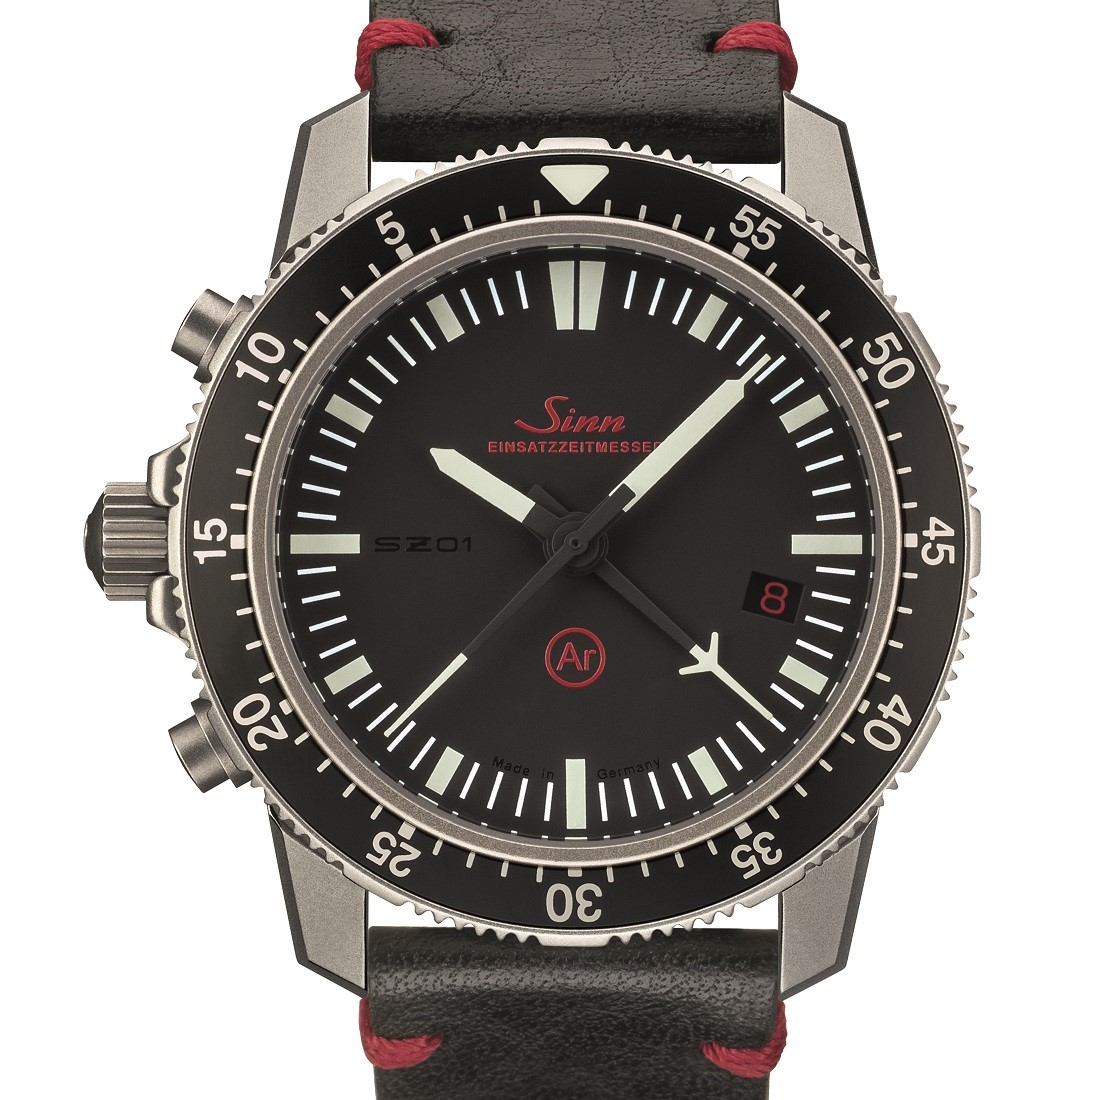 Sinn EZM 1.1 Mission Timer Limited Edition Watch Watch Releases